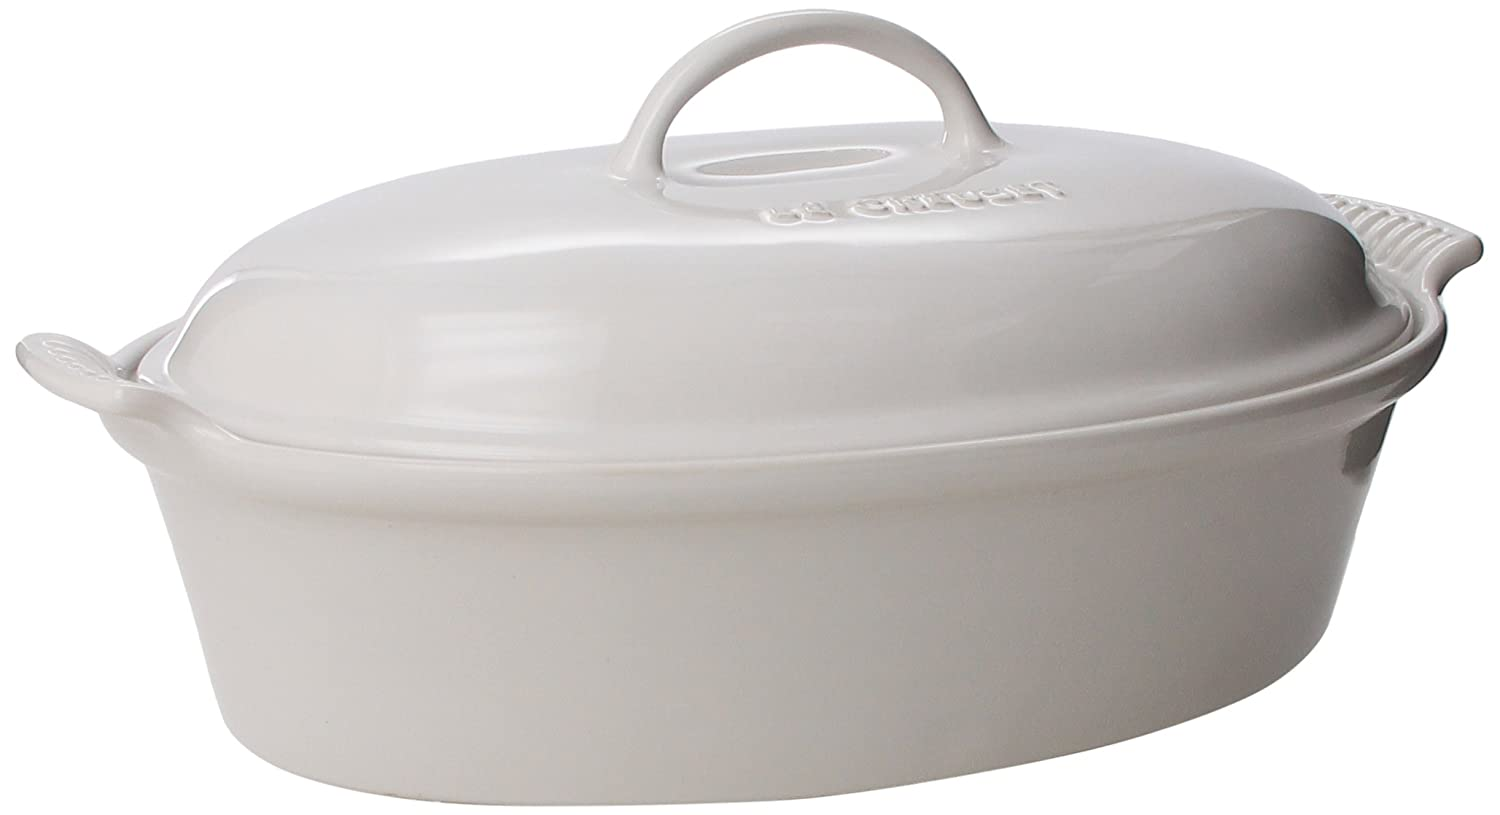 Le Creuset Stoneware 4-Quart Covered Oval Casserole, Cerise (Cherry Red) Le Creuset of America PG0405-3667